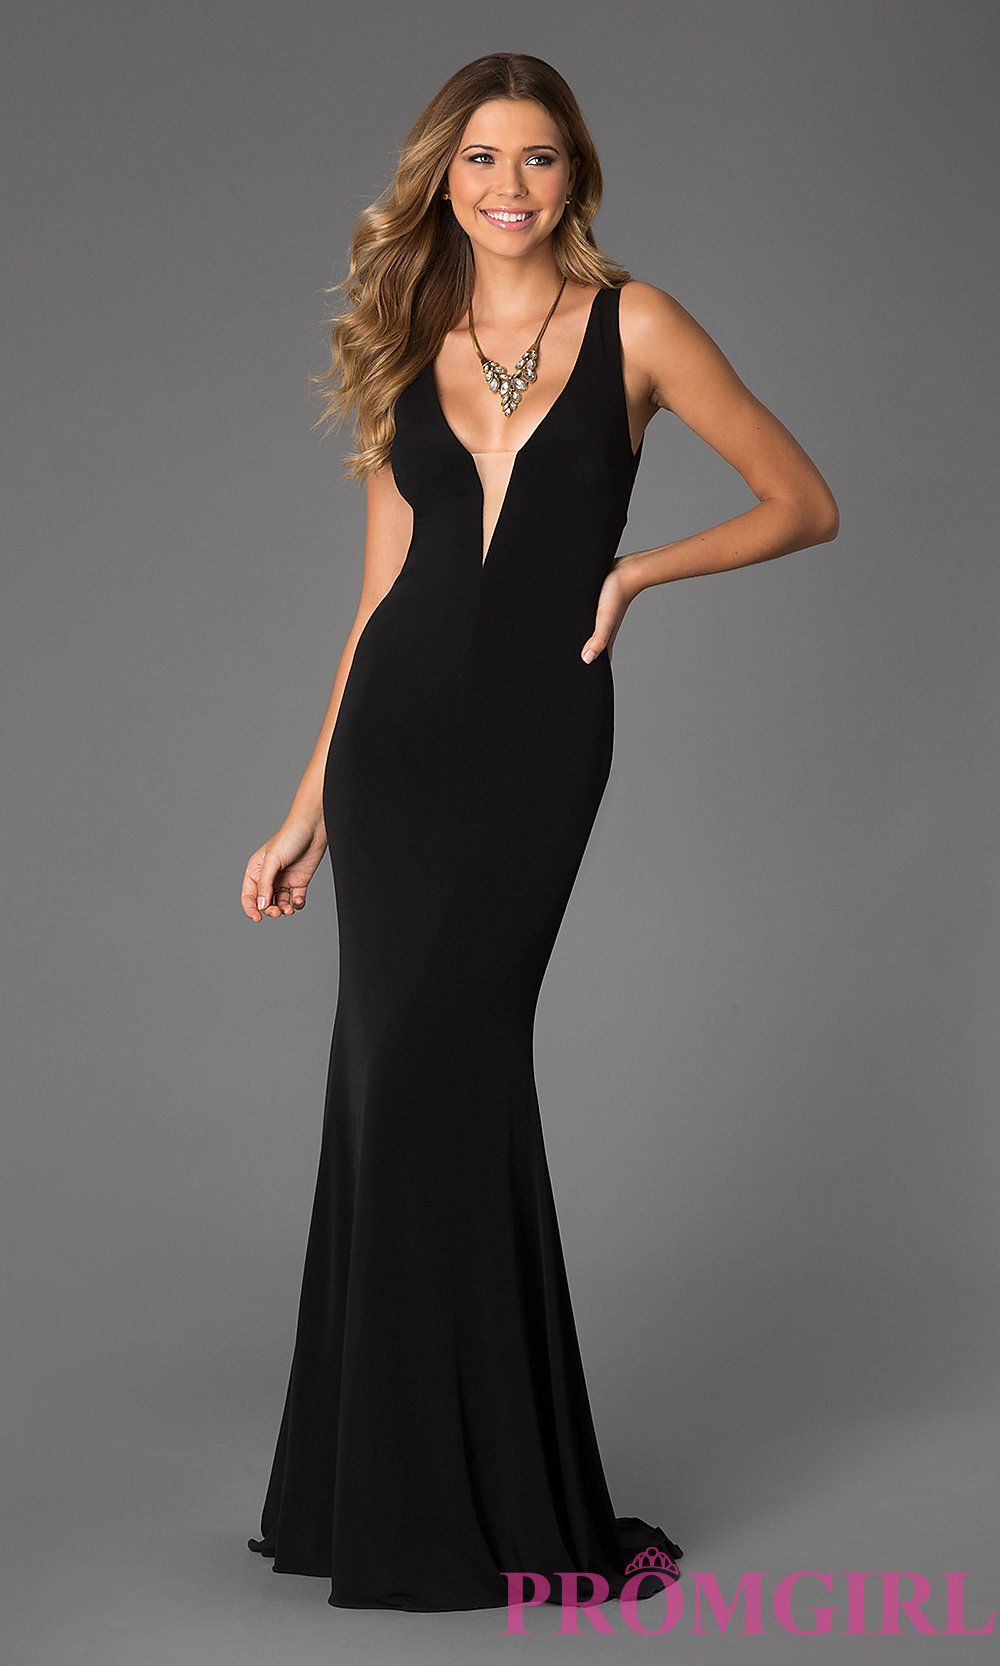 Hayley wants prom pinterest gowns low cut black dress and prom embellished chiffon black trumpet v neck natural evening dress in stock prom dress prom dresses ombrellifo Images